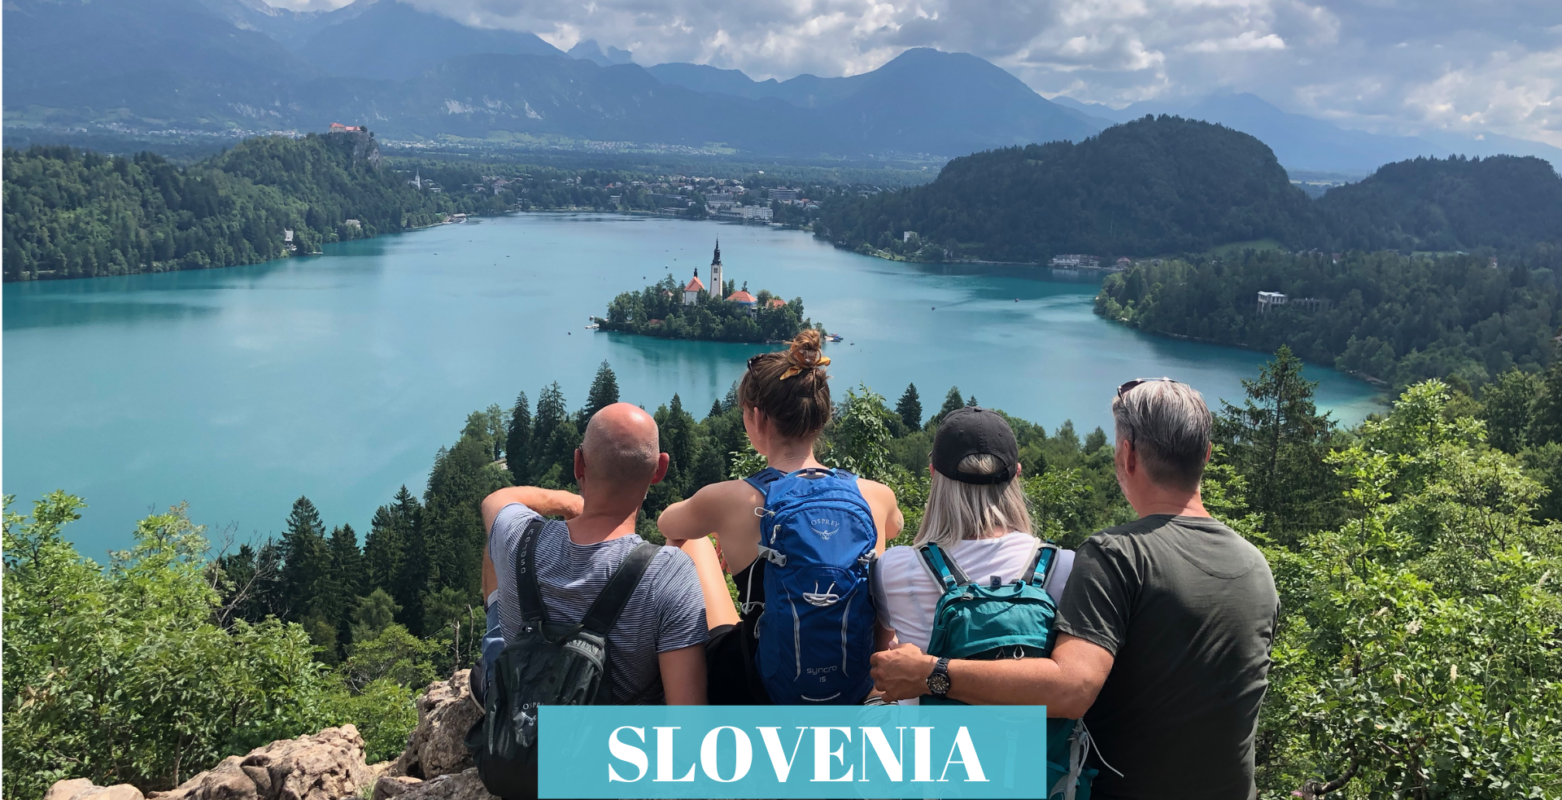 Slovenia – A cornucopia of possibilities